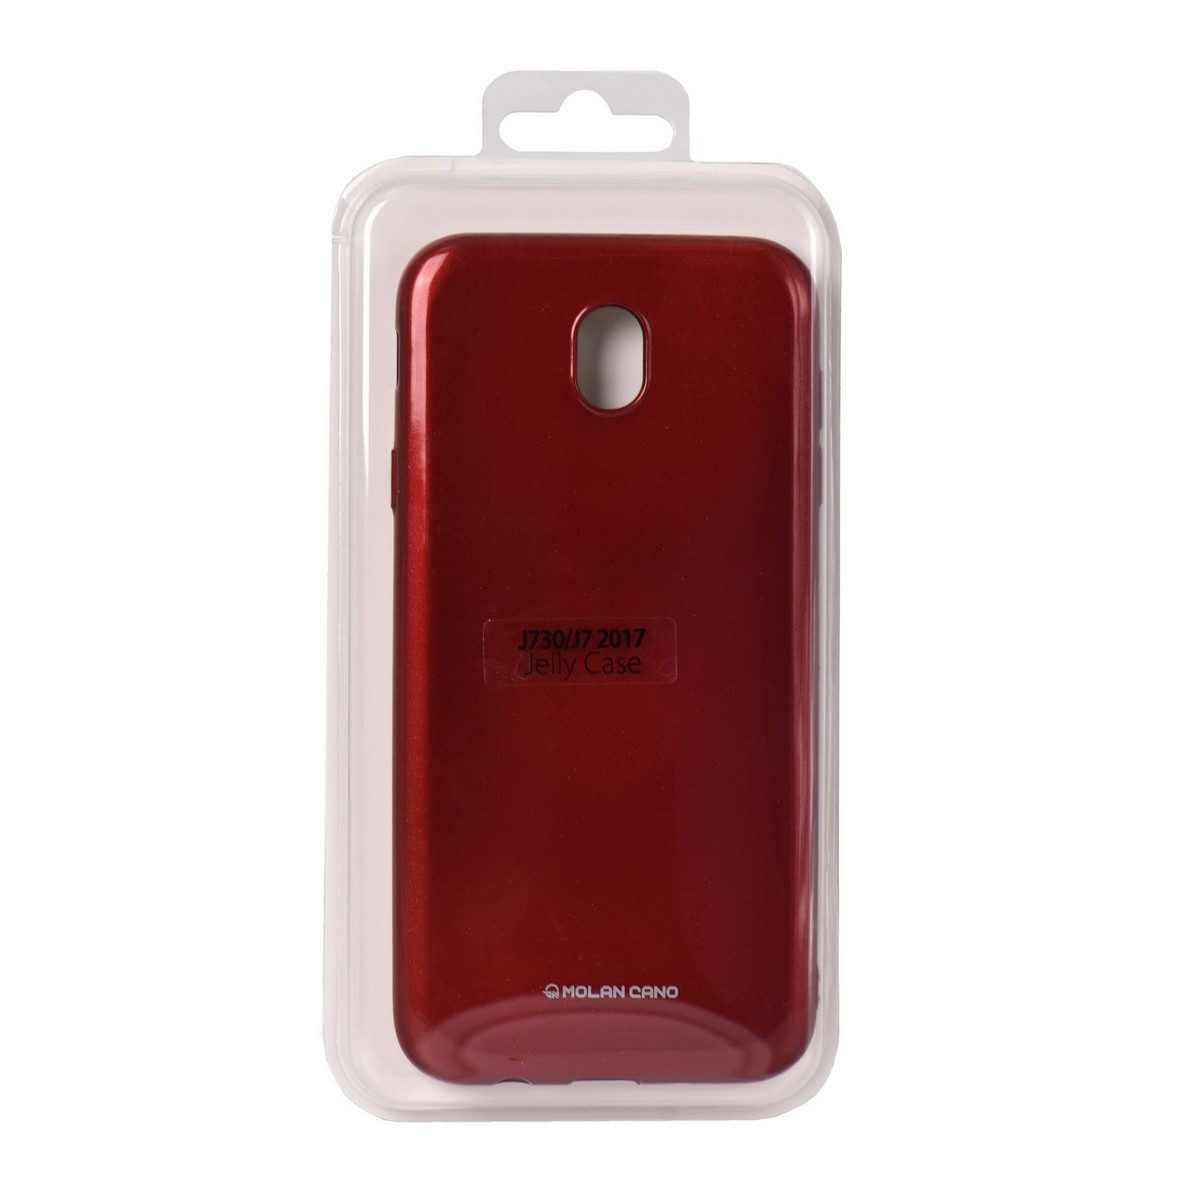 Чехол для Samsung Galaxy J7 (2017) J730 back cover Molan Cano Jelly Case Red - MobiPlus в Караганде